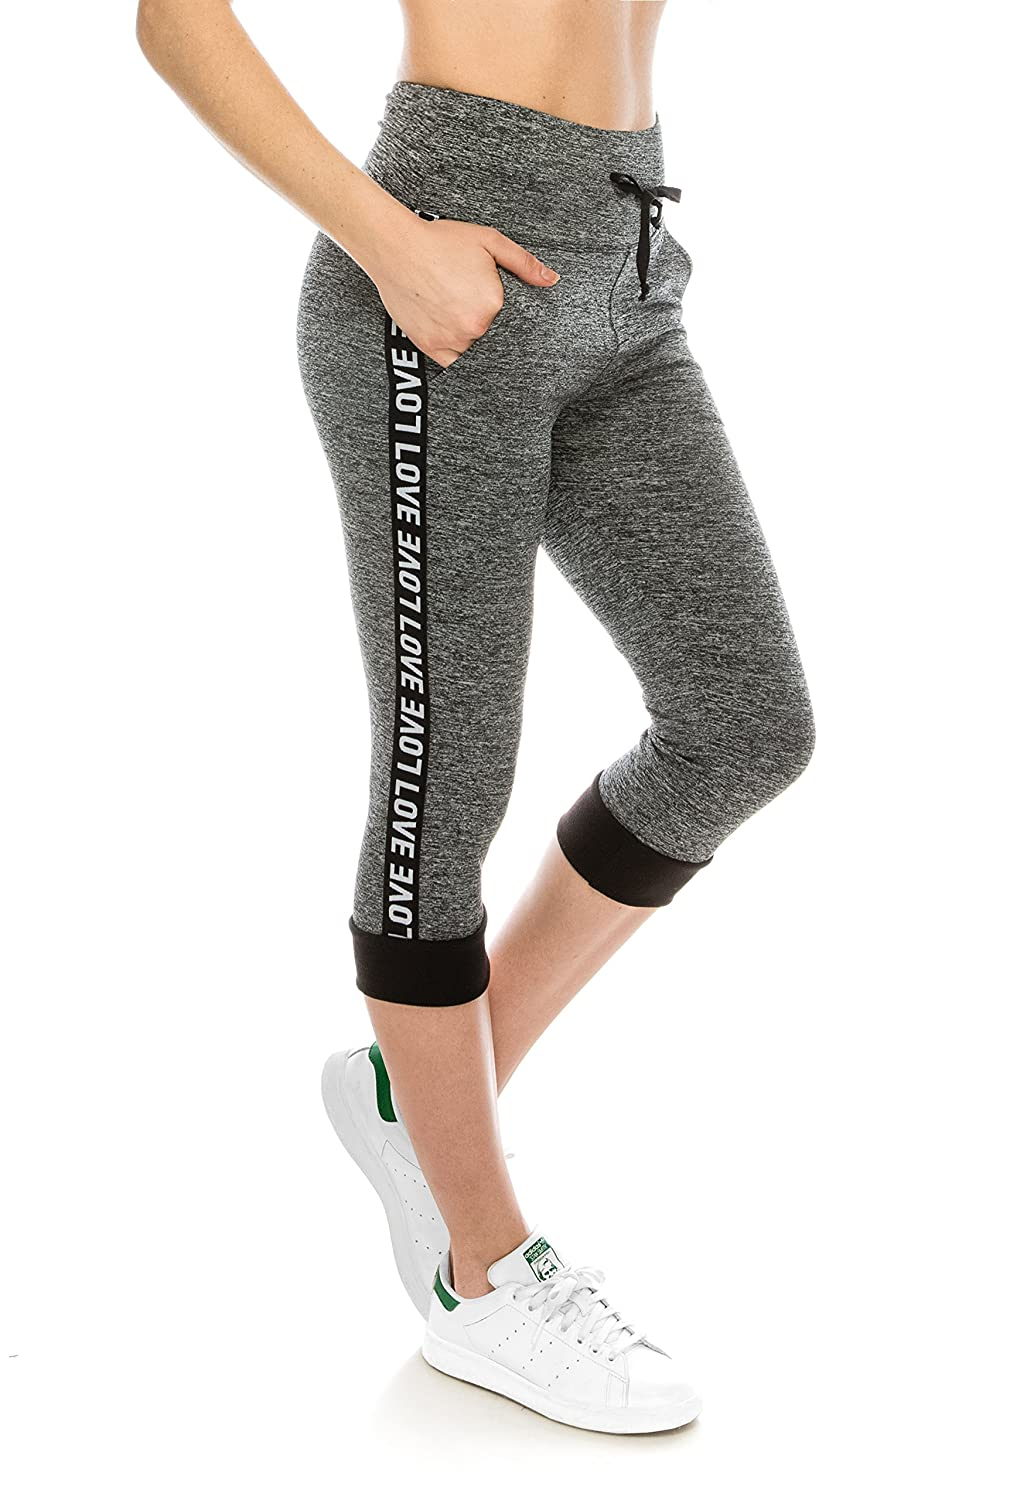 Capri   Grey Black Always Women High Waisted Leggings  Stretch Yoga Workout Marbled with Drawstrings and Pockets